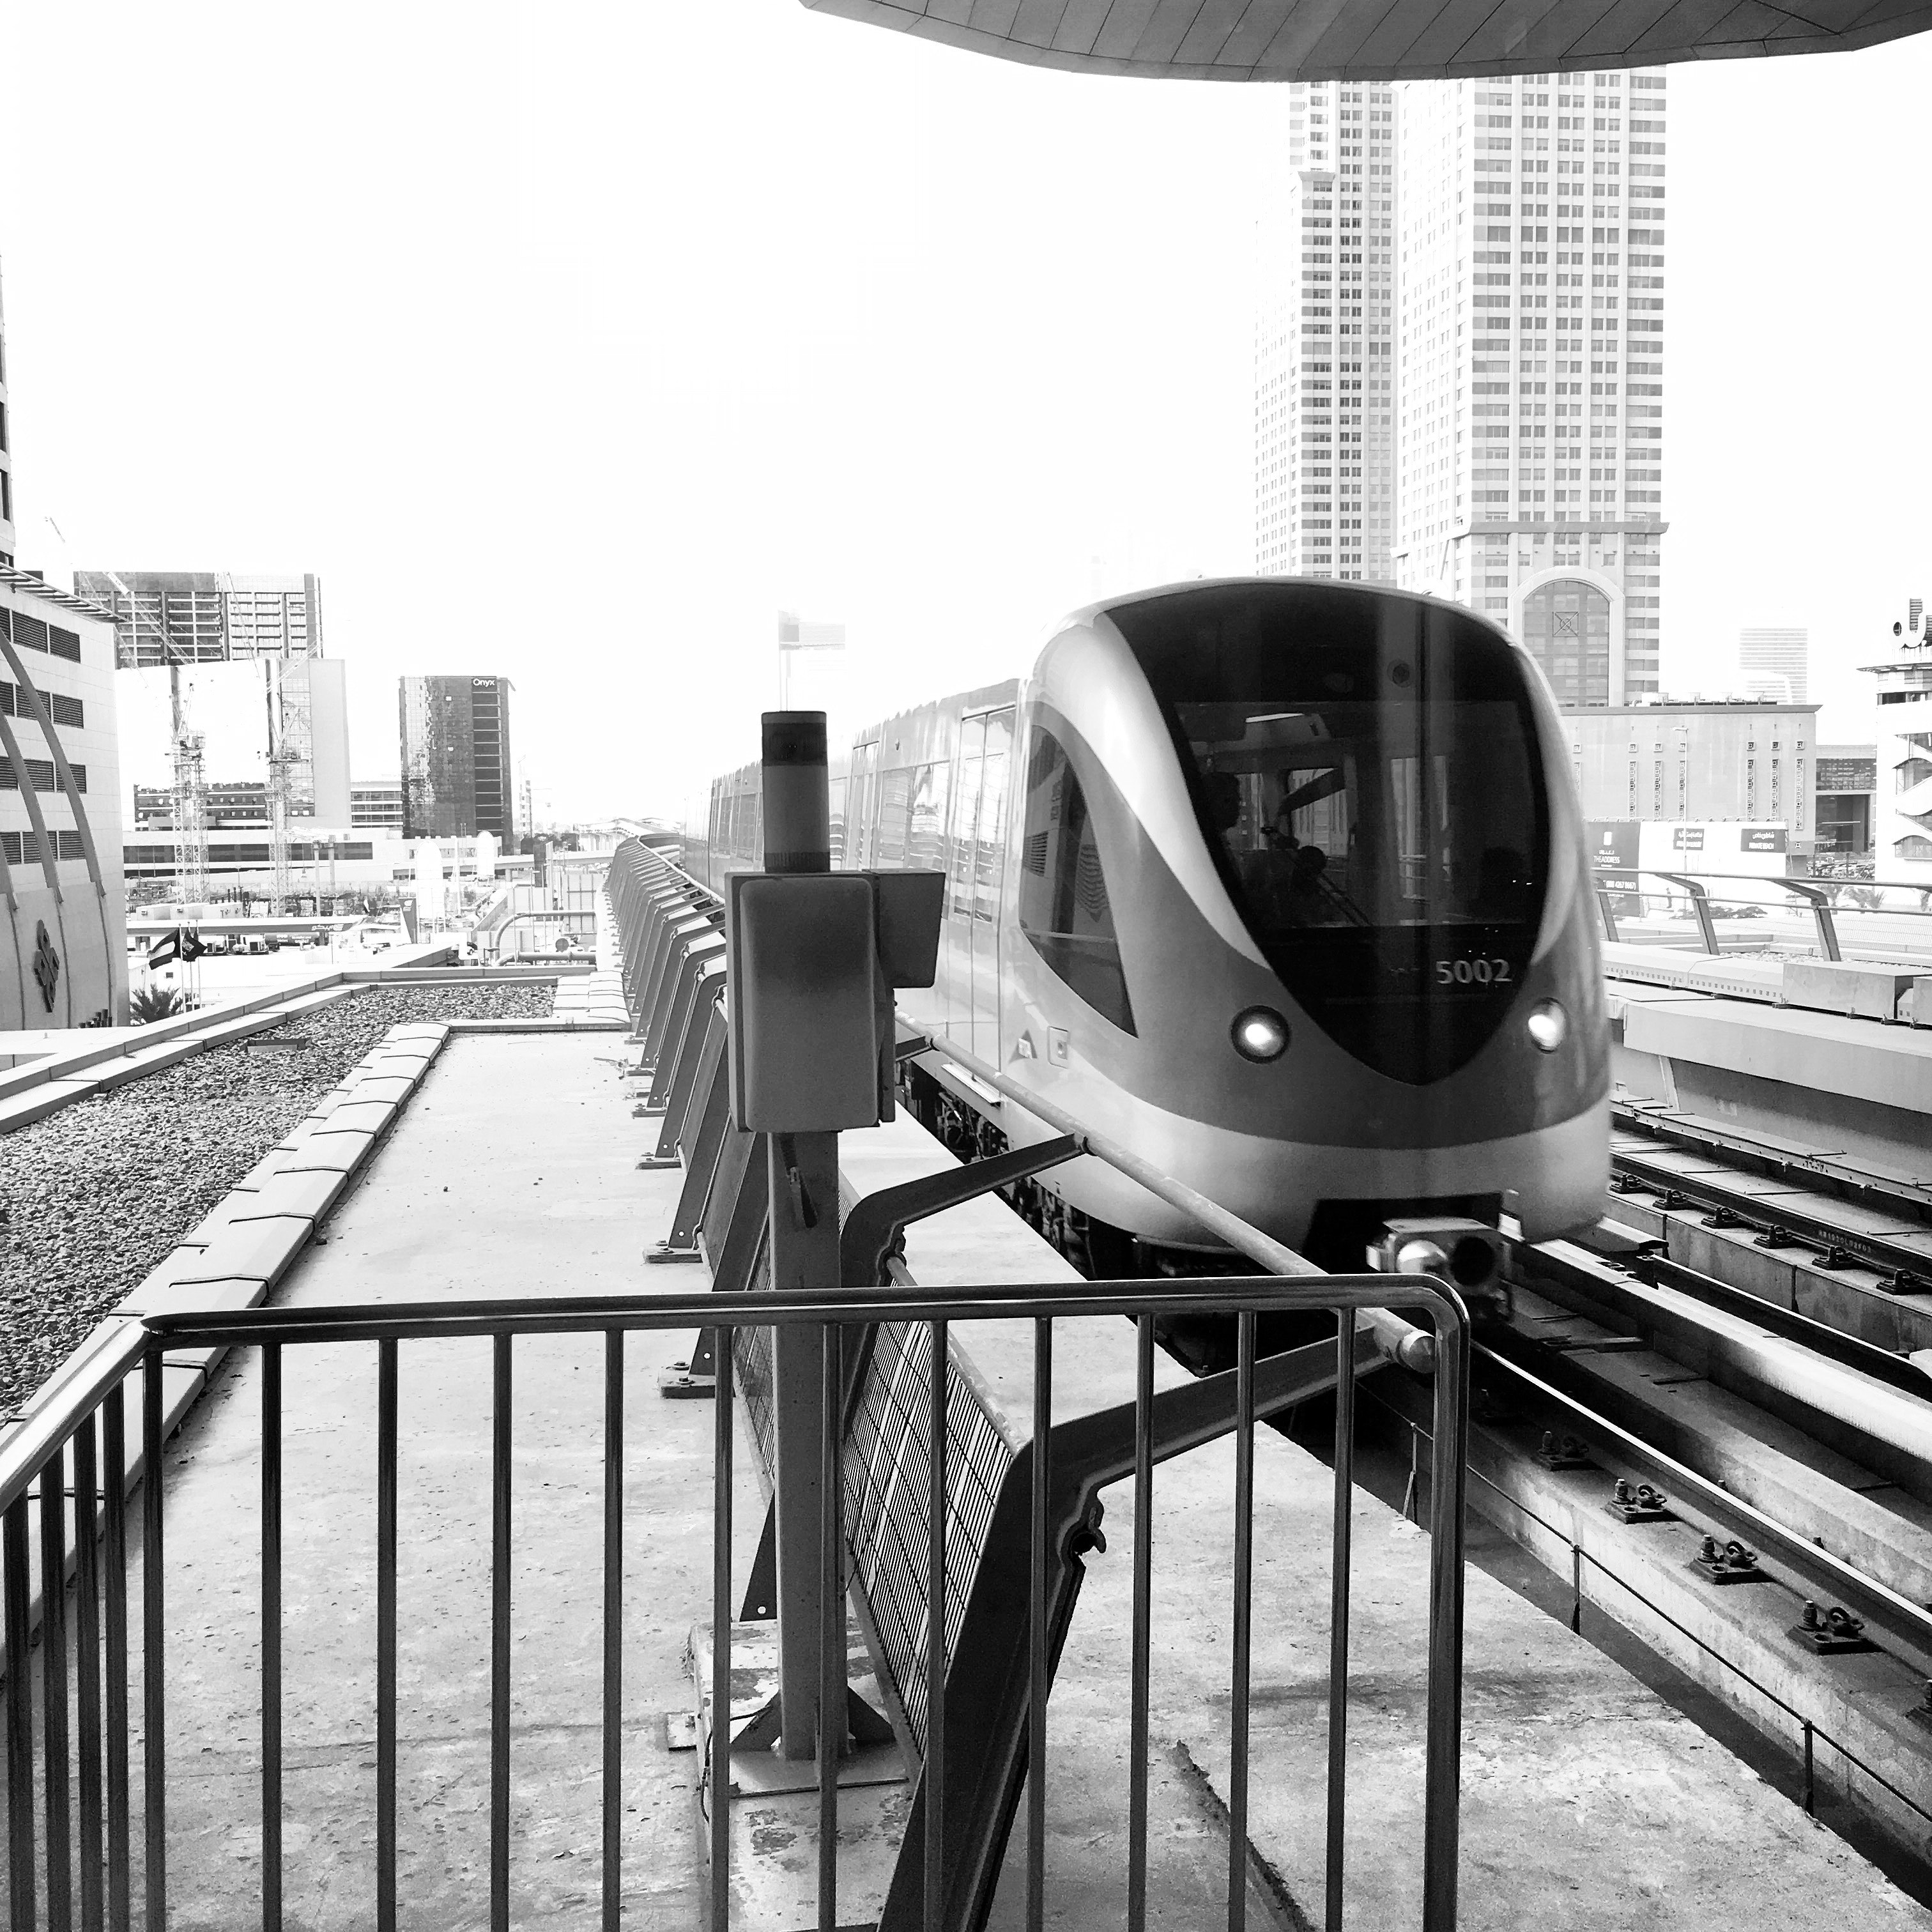 View Of Buildings And Train In Black And White, Architecture, Skyscraper, Tube, Travel, HQ Photo